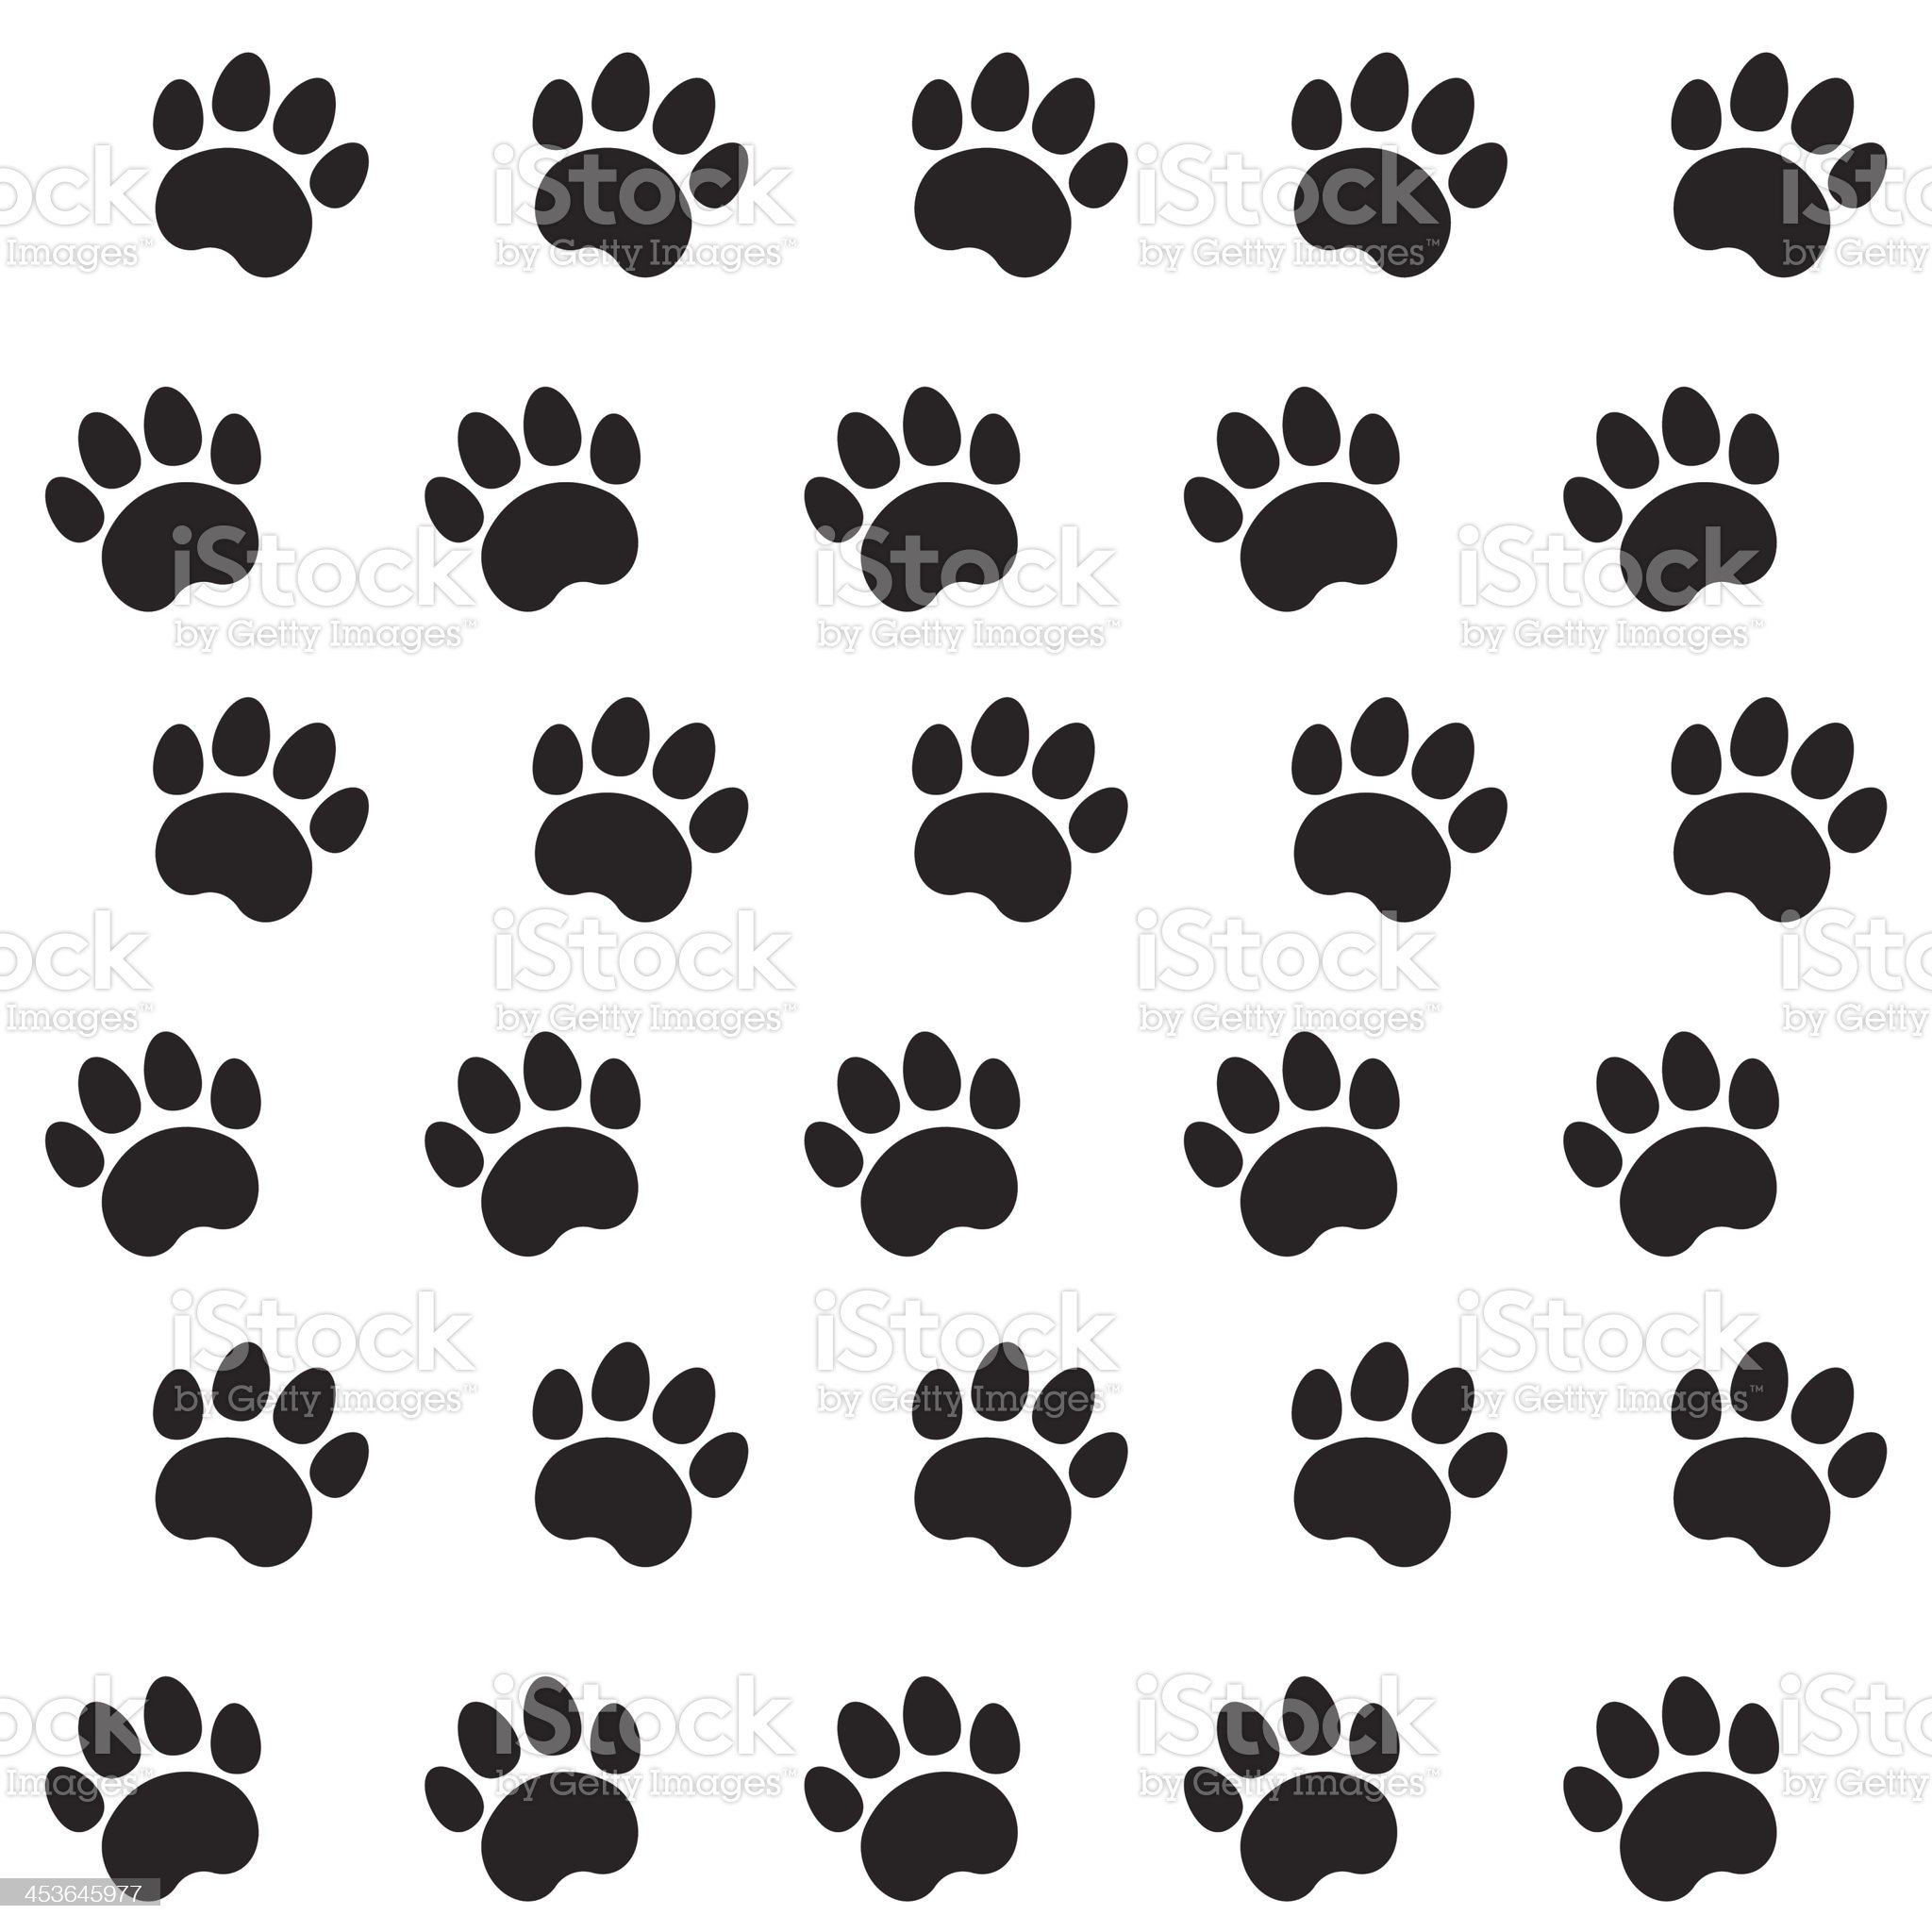 Black cat prints on white background royalty-free stock vector art